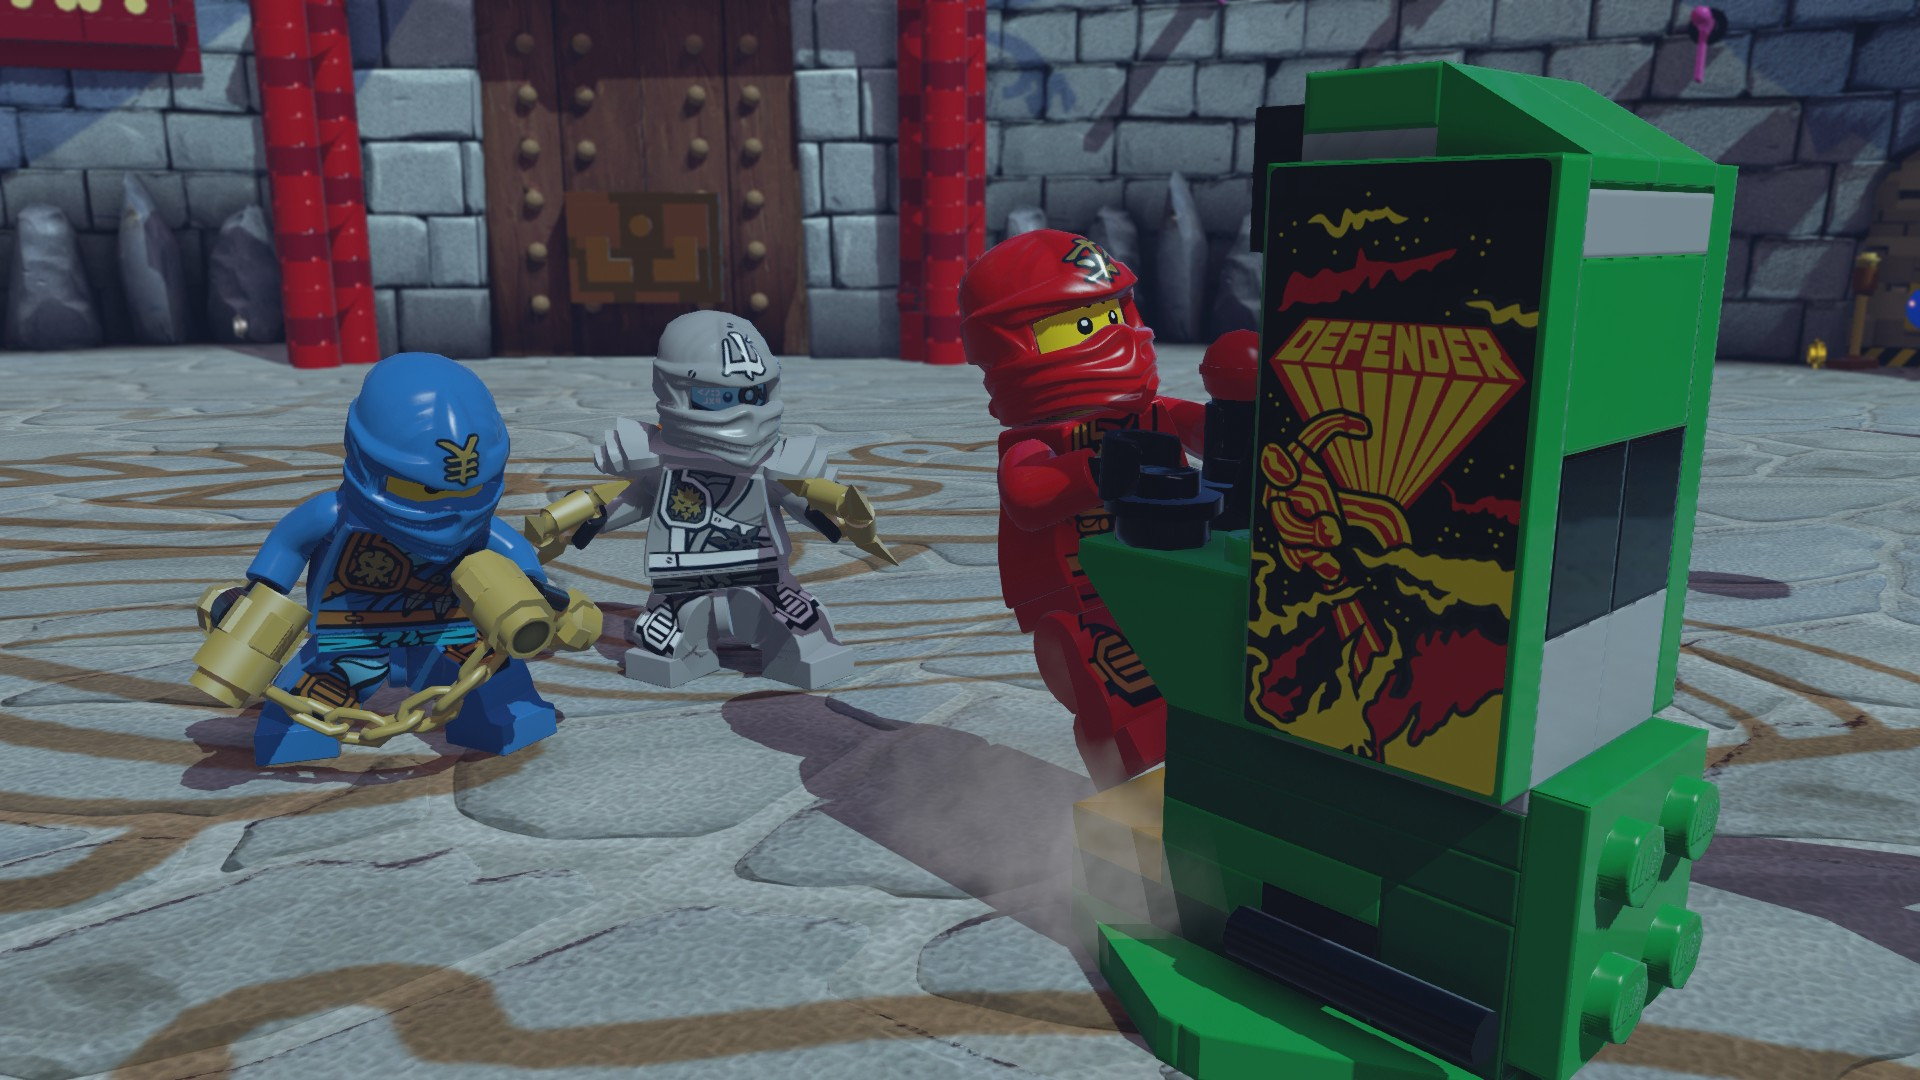 317-lego-dimensions-screenshot-1440840125